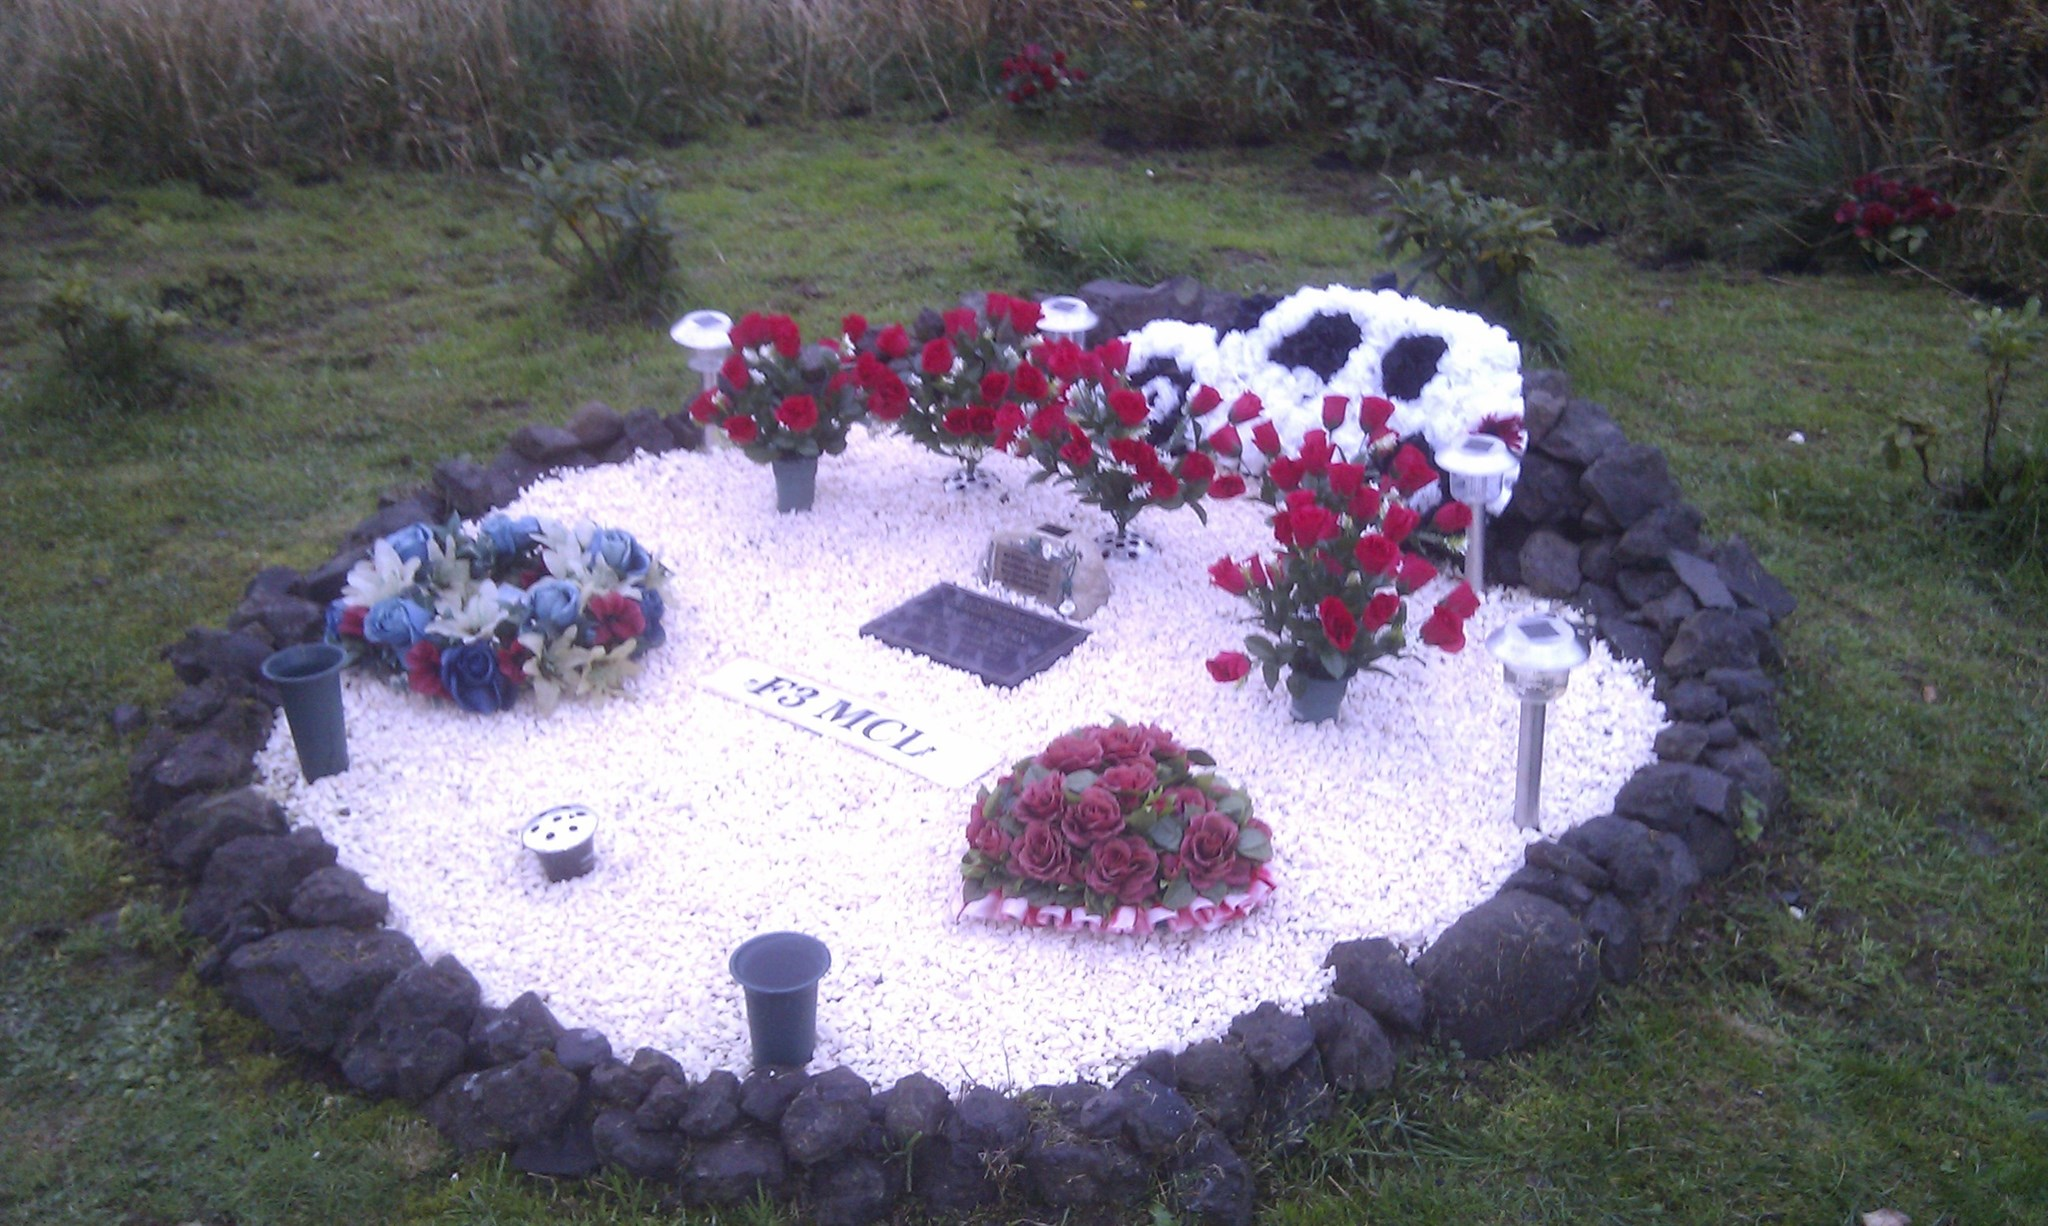 ANDYS MEMORIAL  at the place where he died